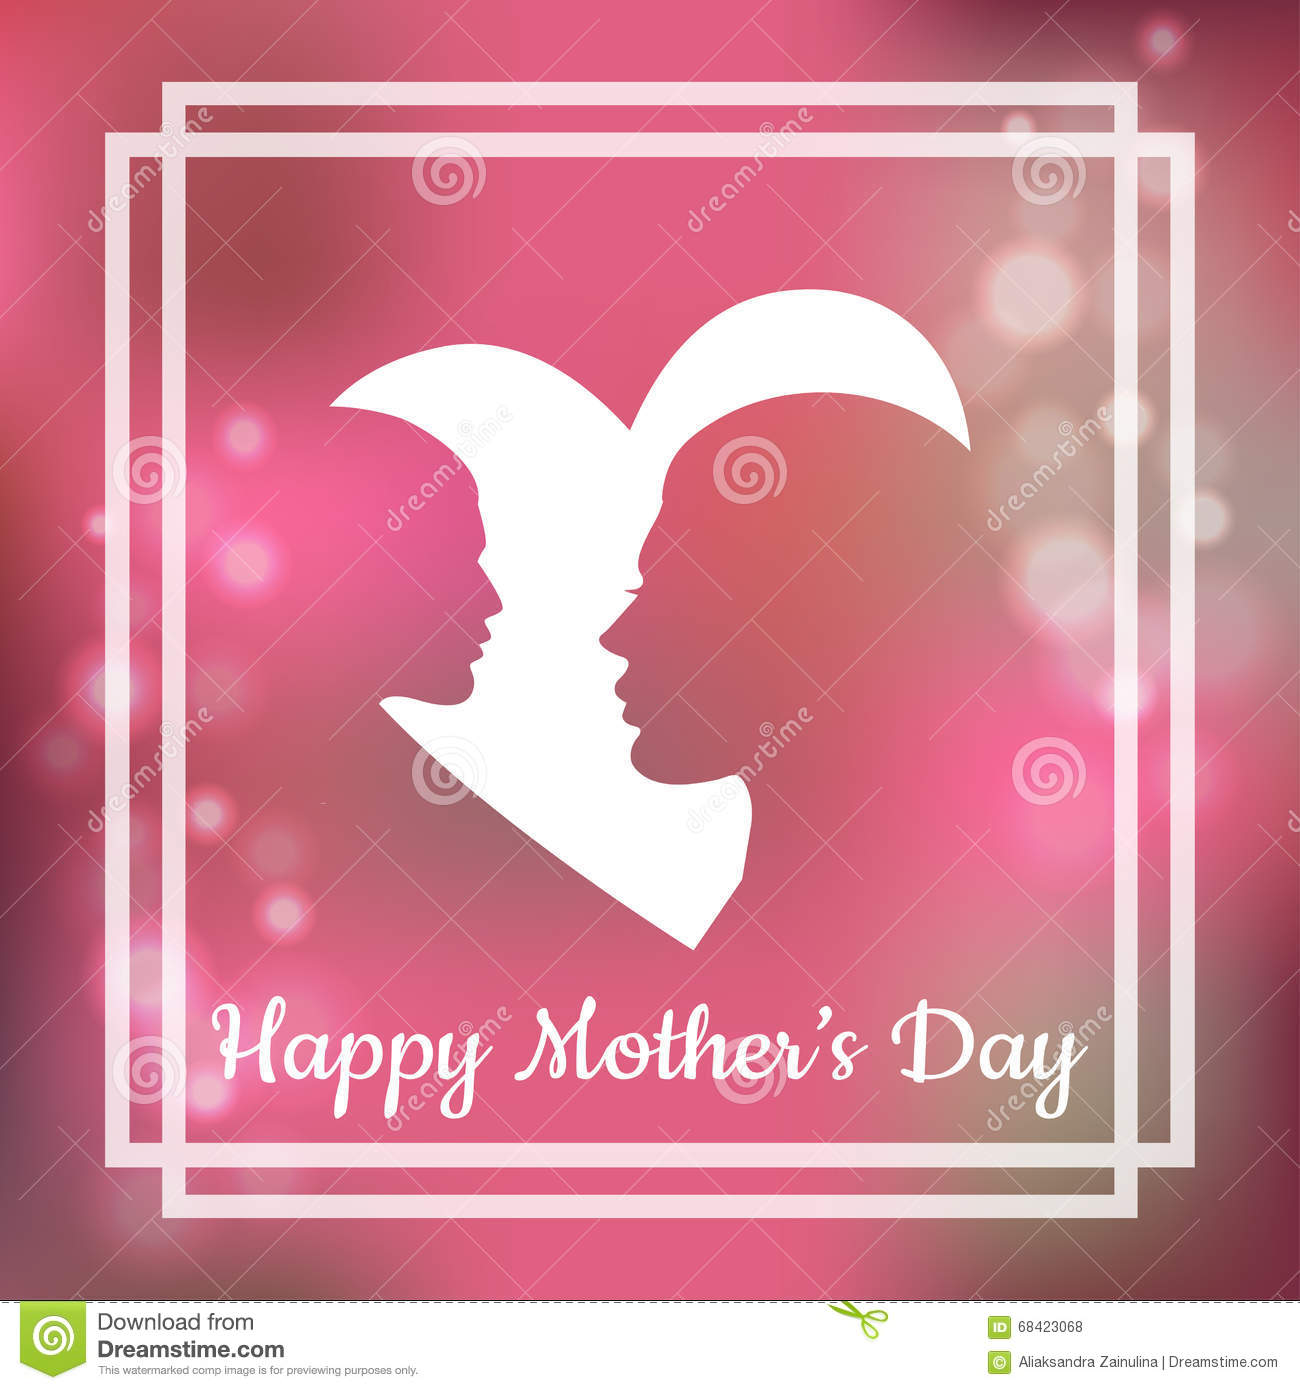 Silhouette of mother and her child with text for happy mothers day silhouette of mother and her child with text for happy mothers day greeting card kristyandbryce Choice Image